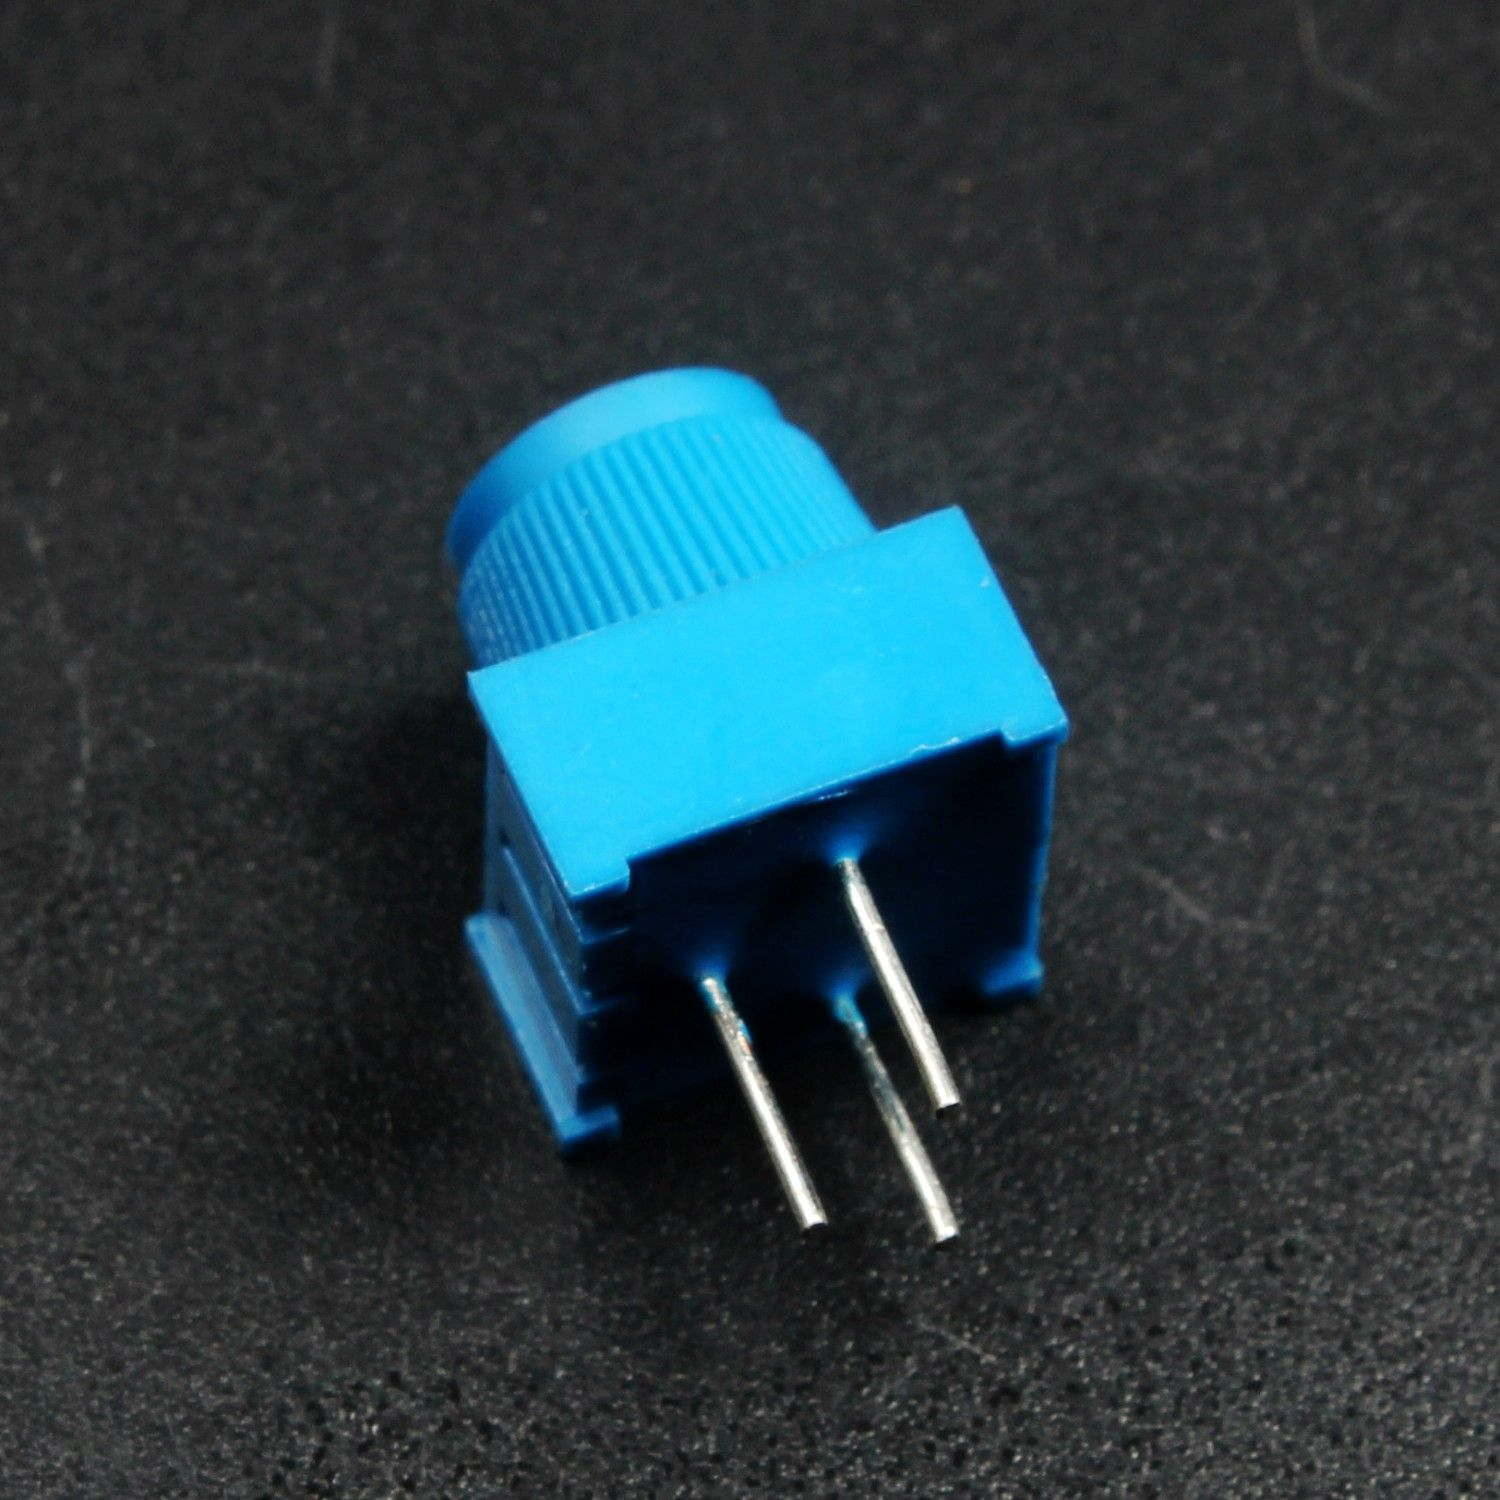 10pcs 104 100KOhm Rotary Potentiometer Trimpot Trimmer Potentiometer ...